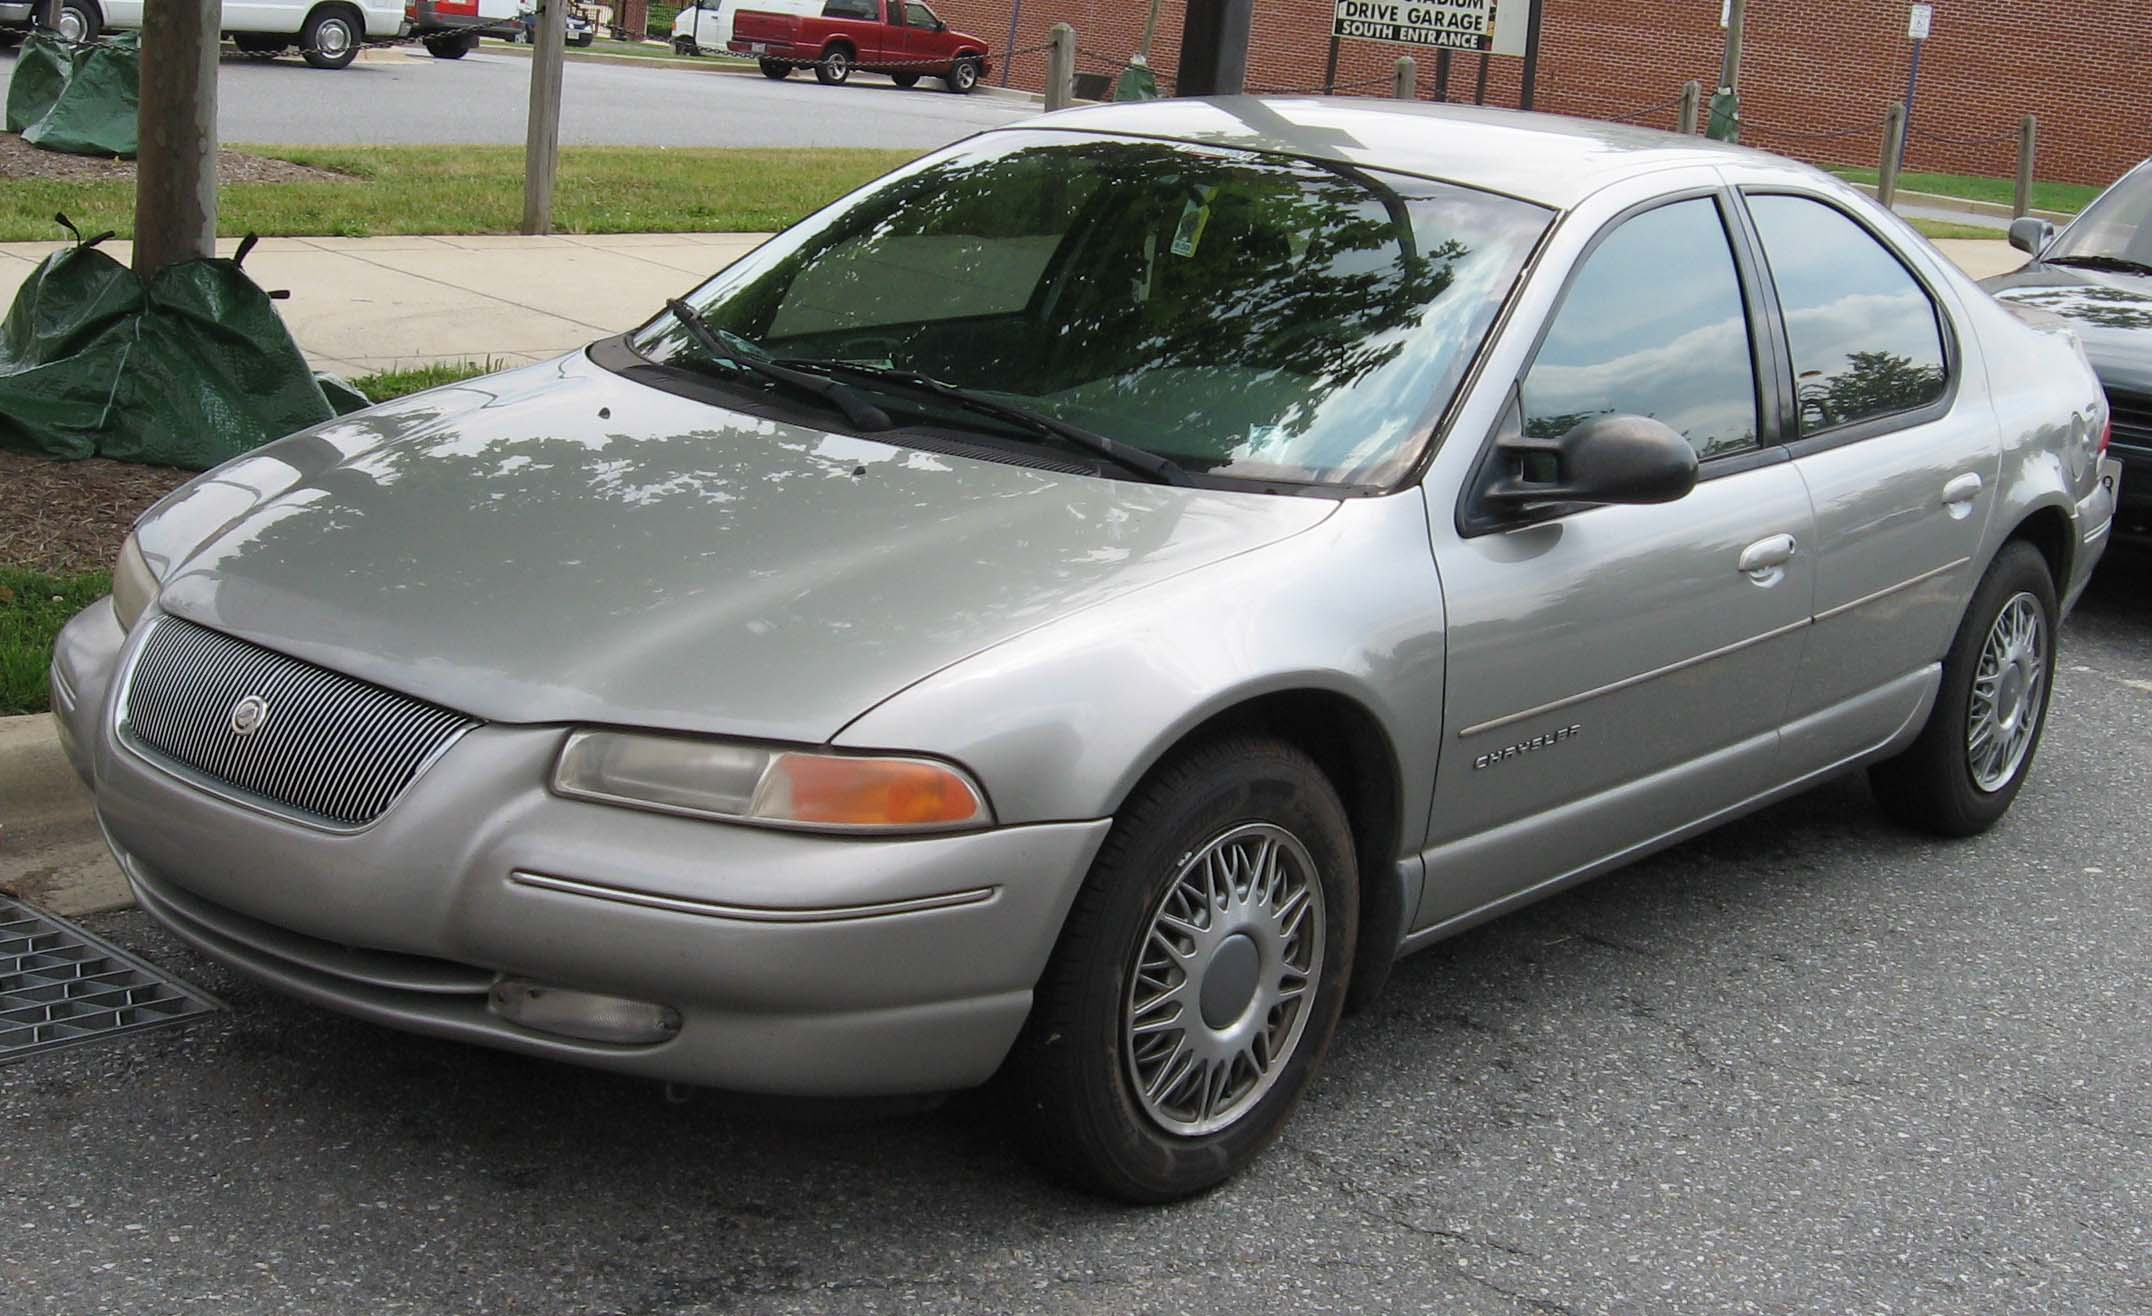 1995 Chrysler Cirrus #1